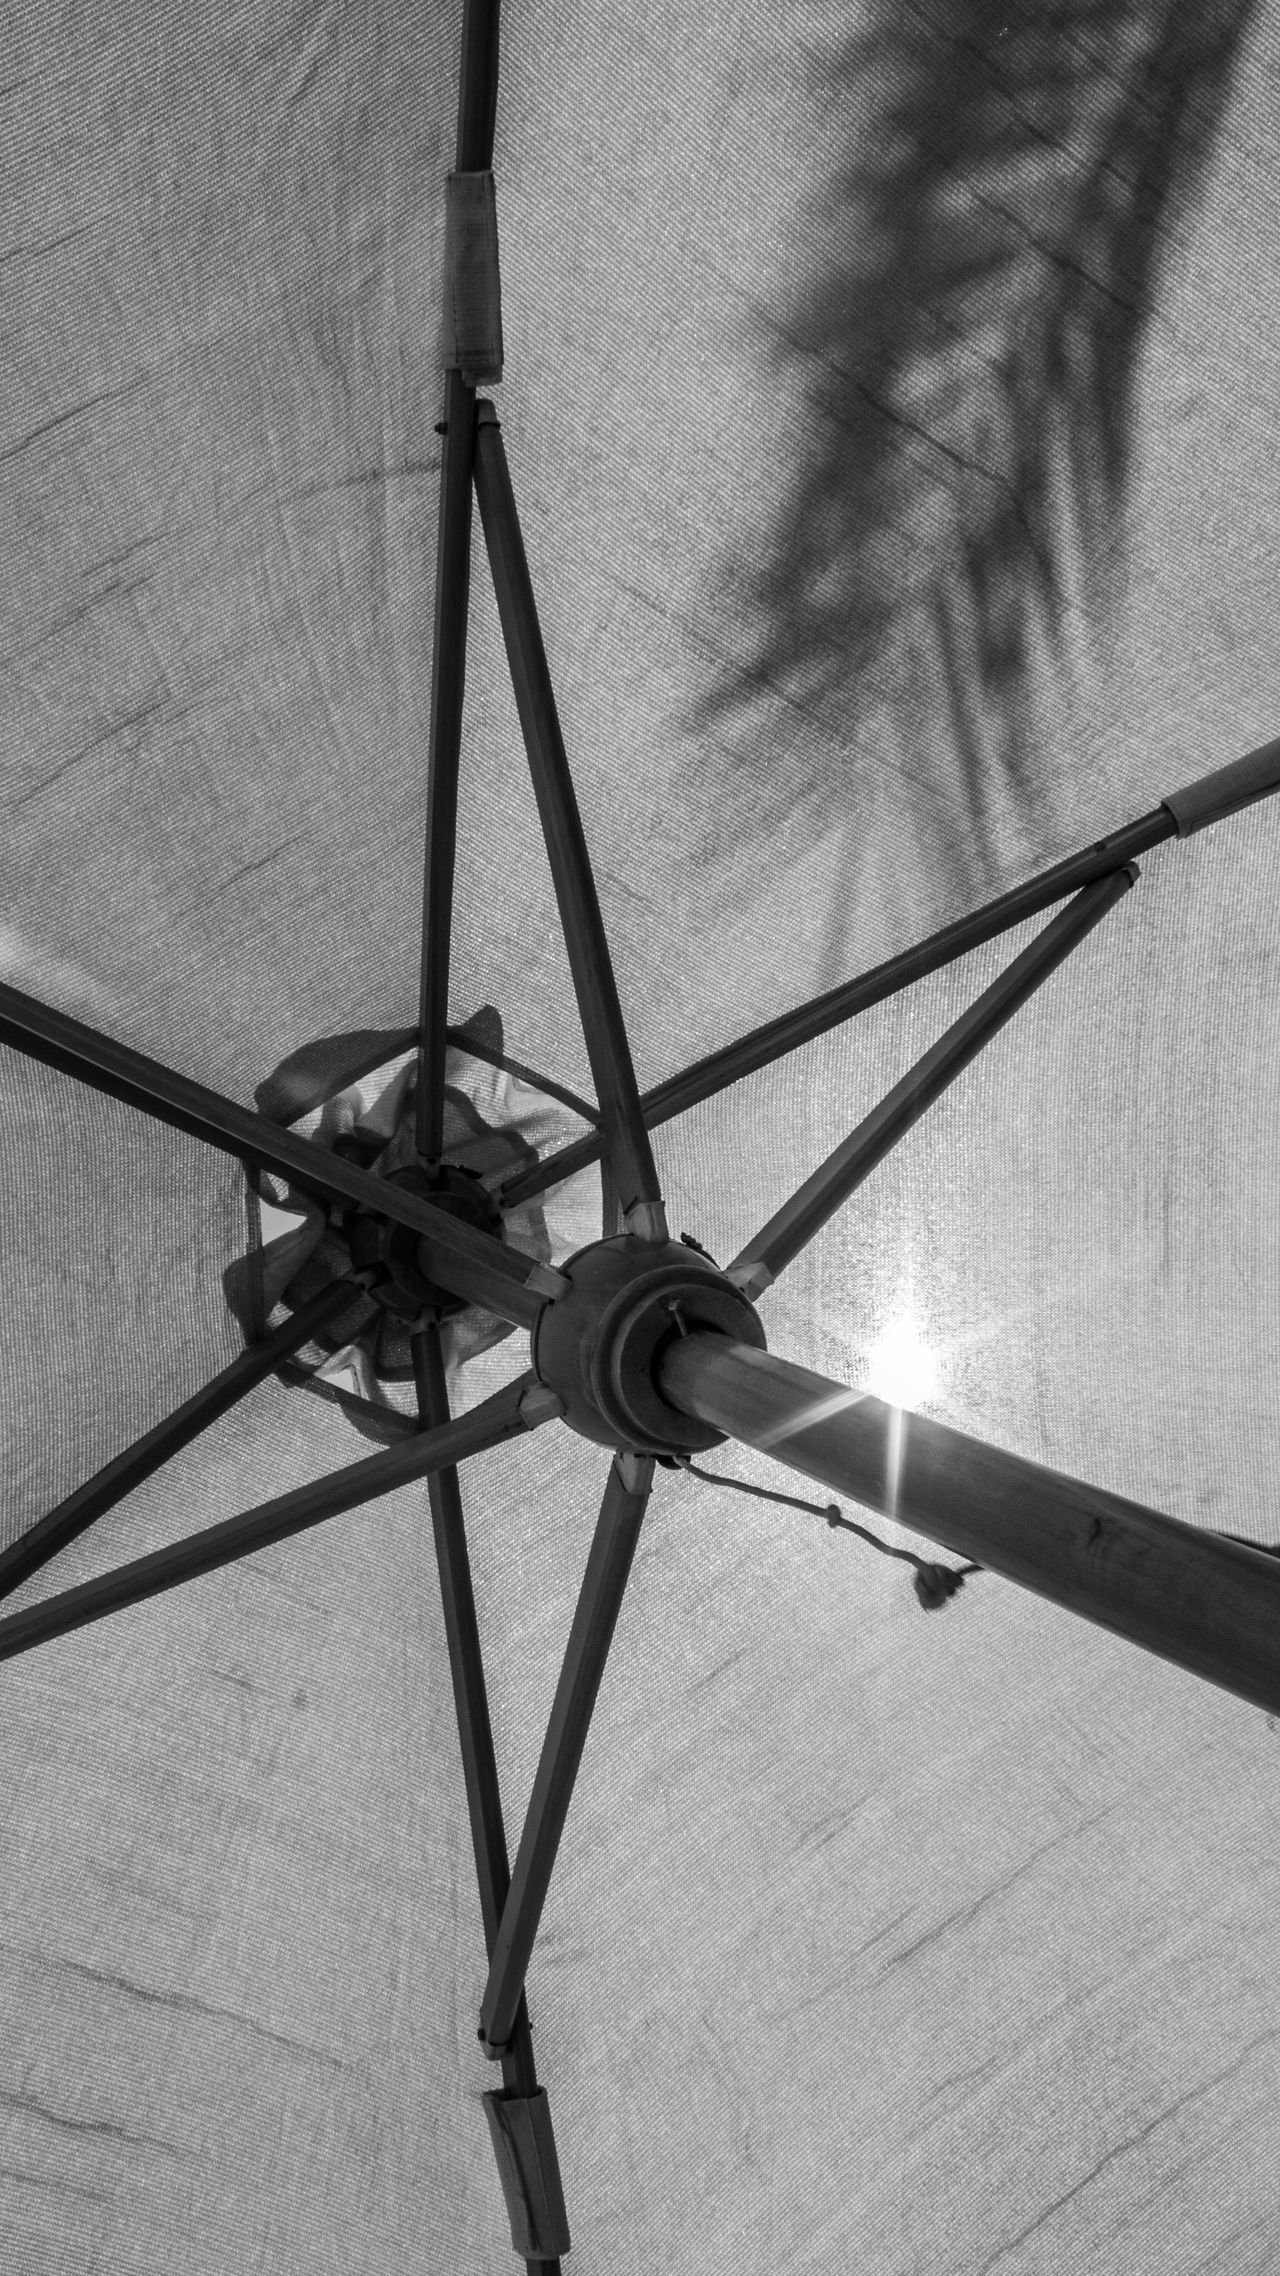 Blackandwhite Blackandwhite Photography Day Fabric Lookingup Low Angle View No People Outdoors Palm Leaf Palm Tree Parasol Sunlight Sunprotection